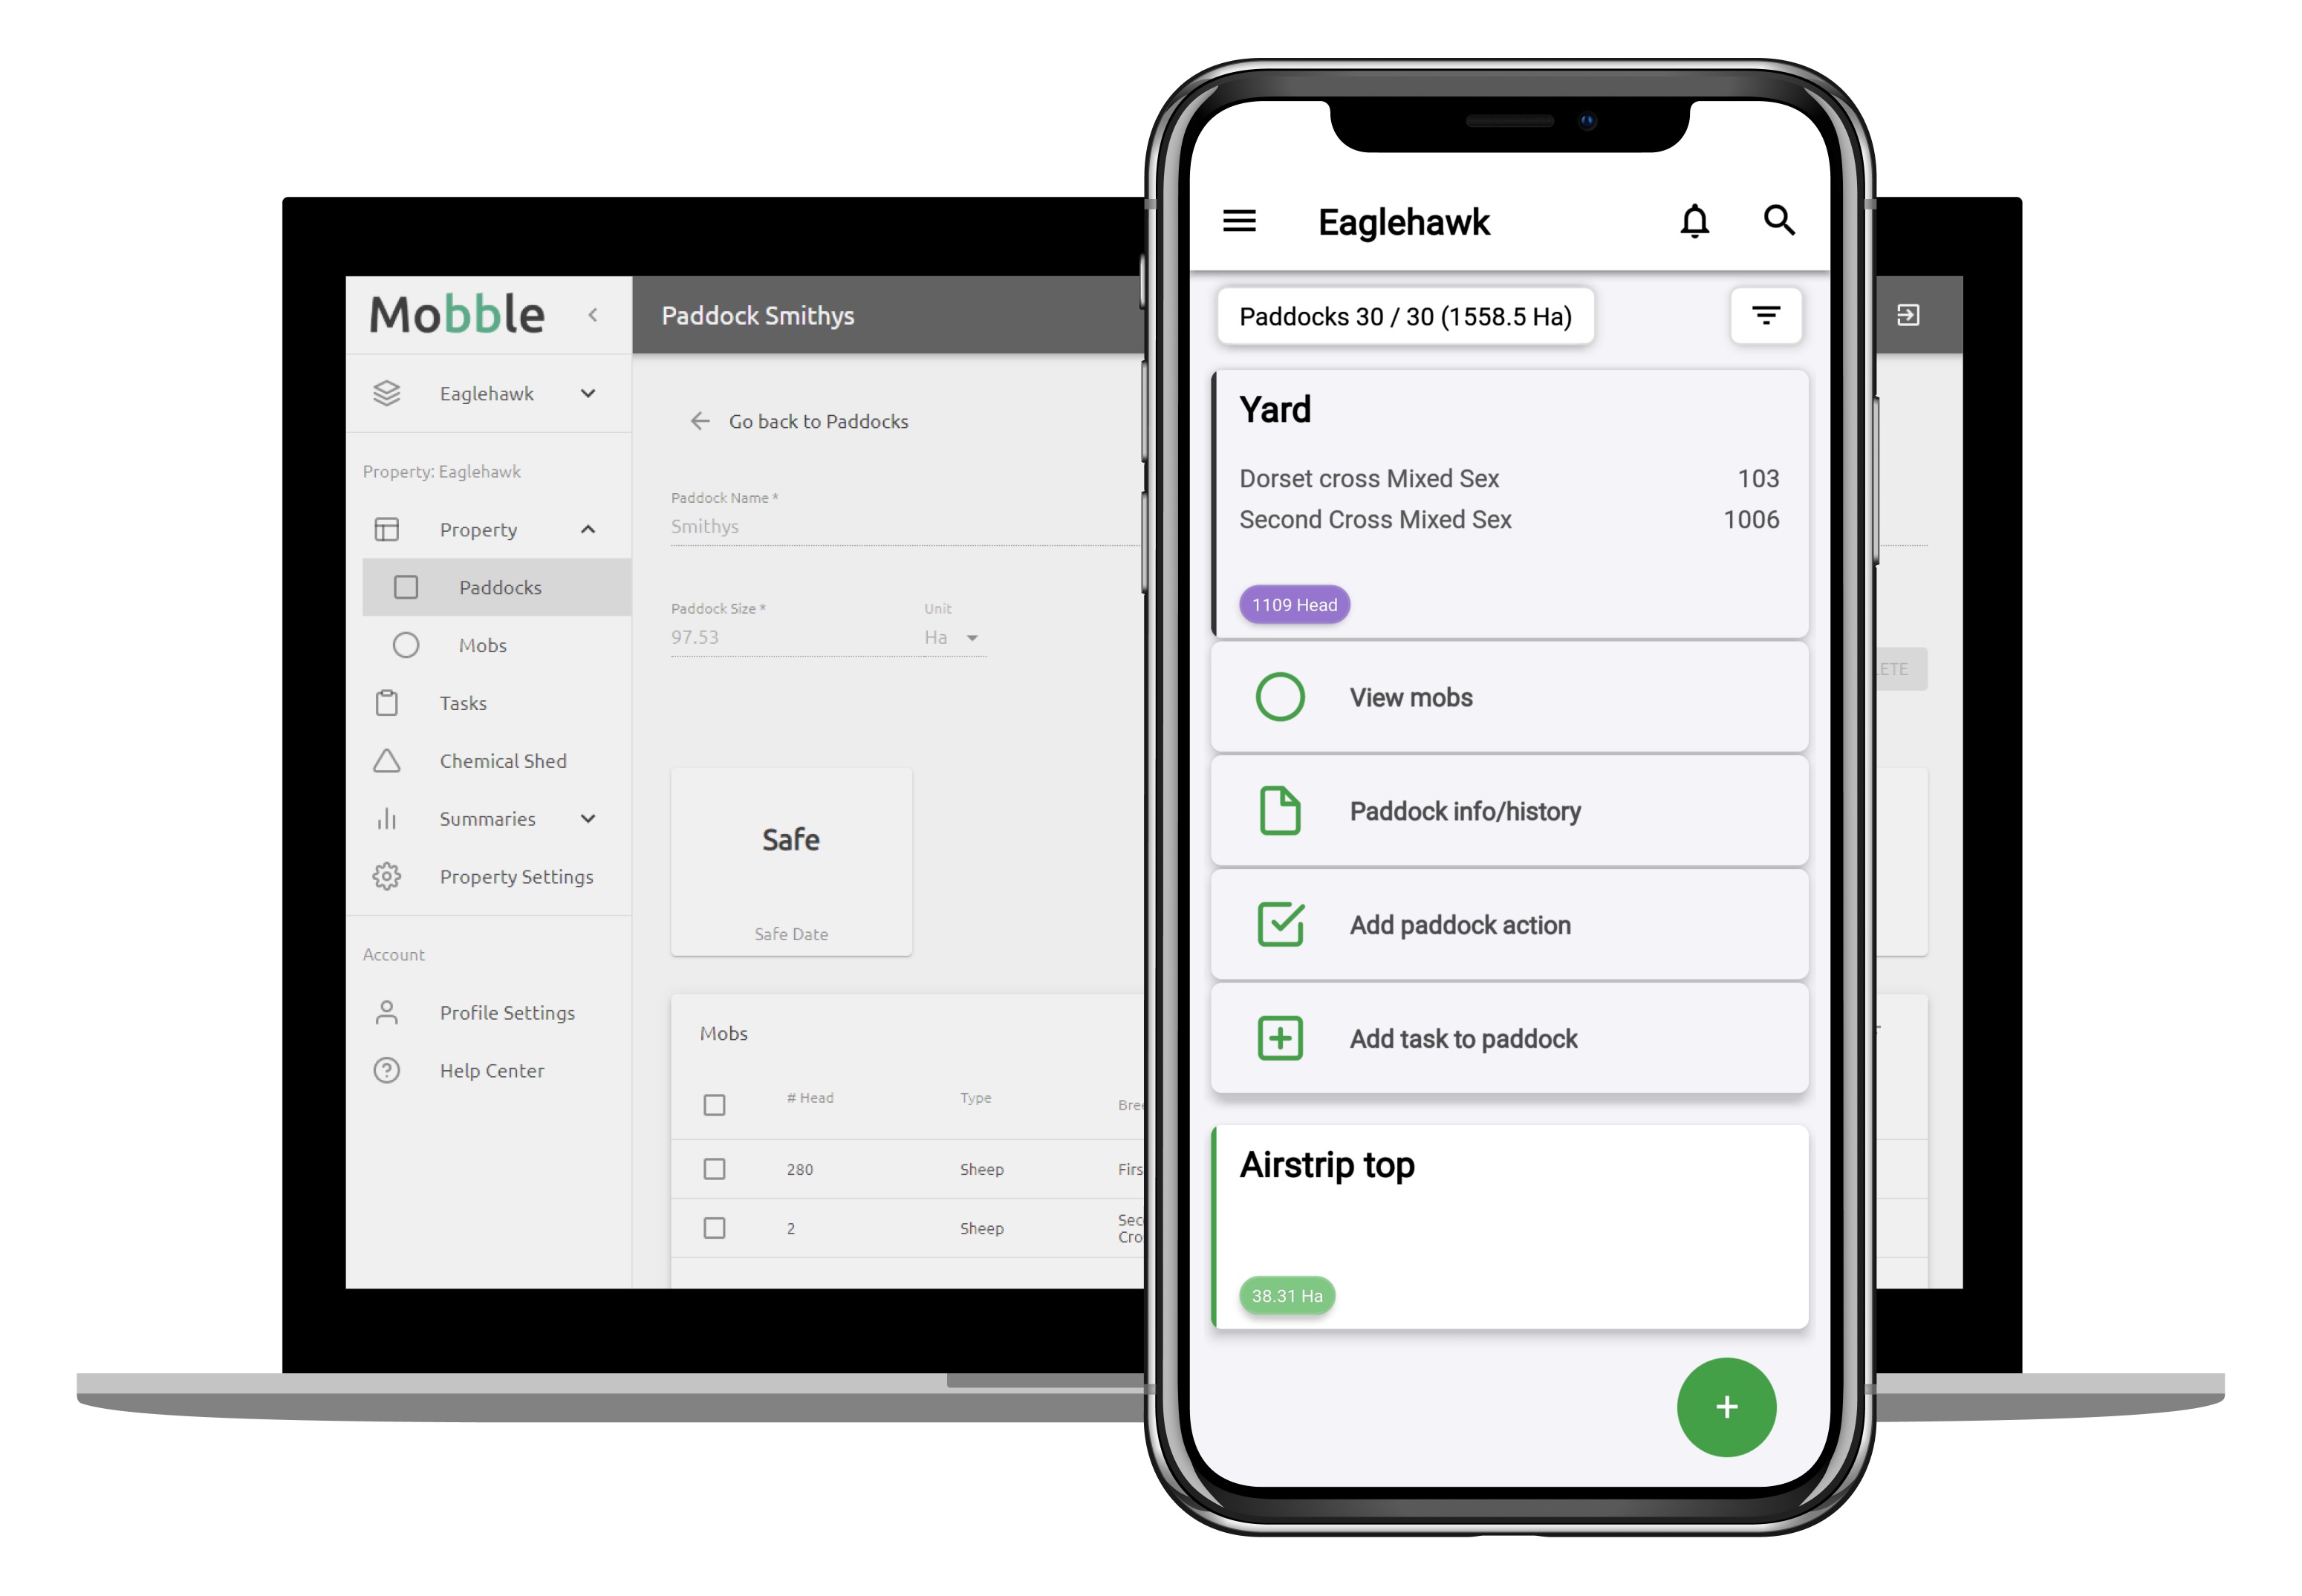 Livestock Farm Management App Mobble